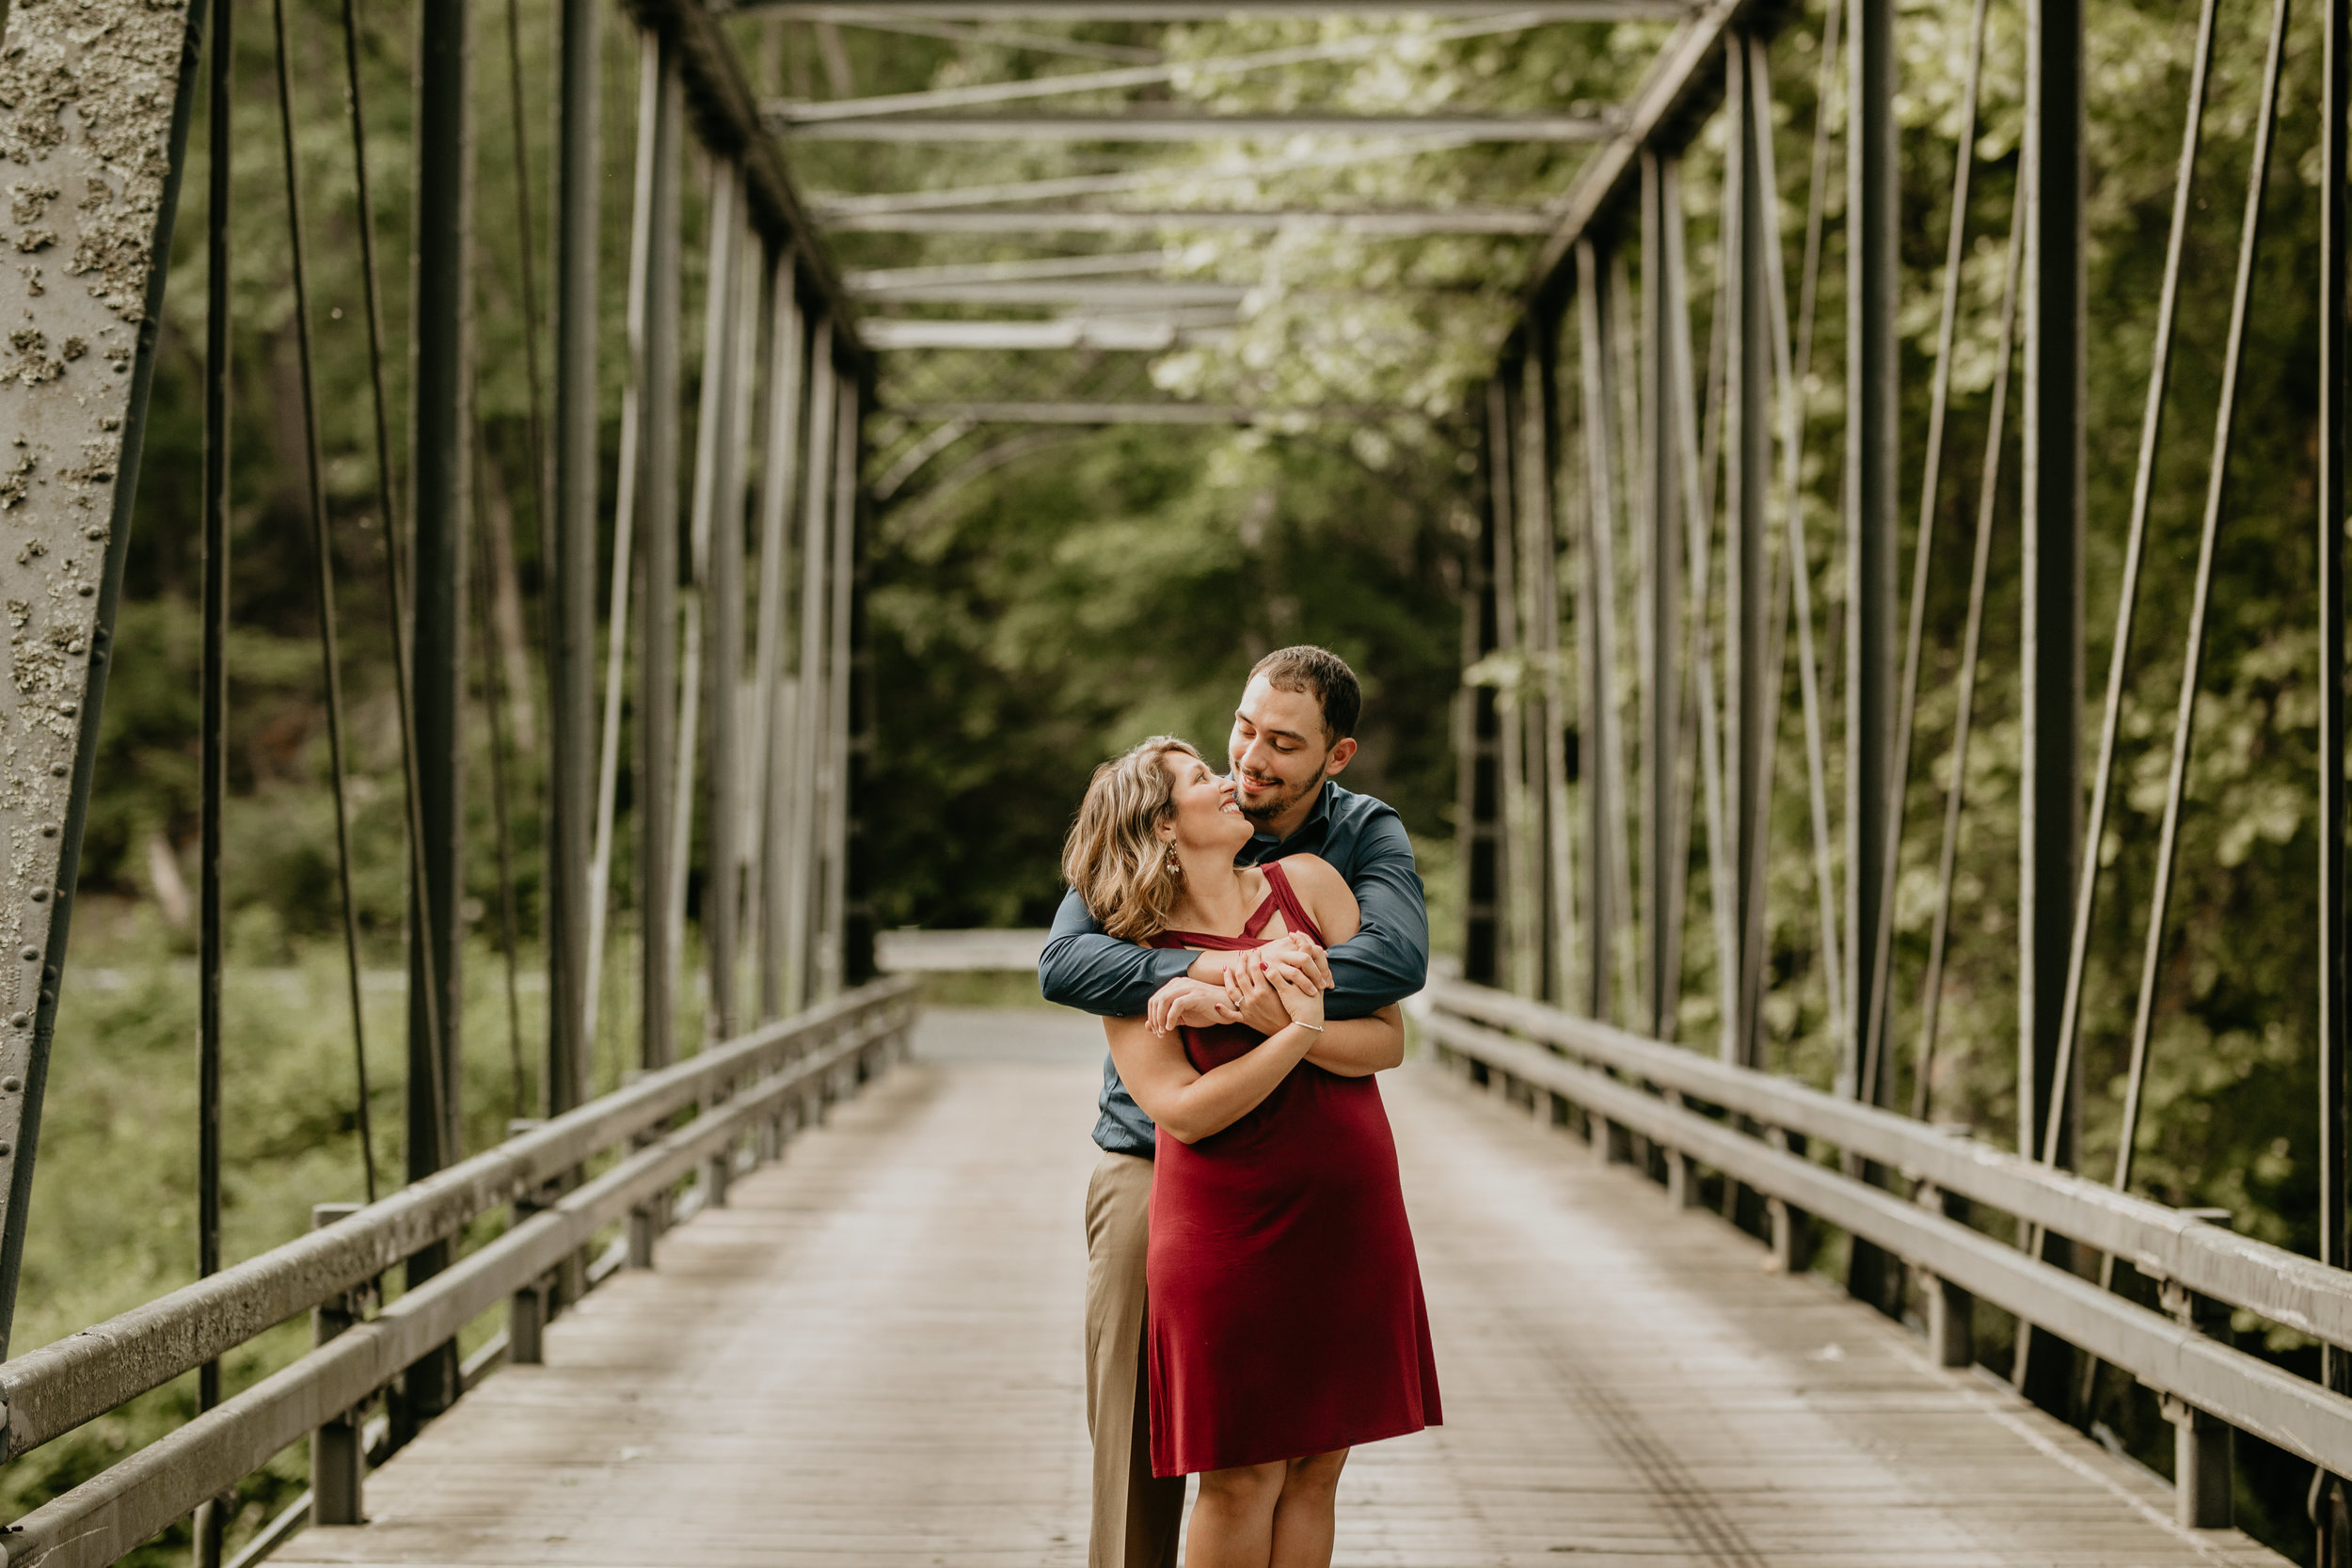 Nicole-Daacke-Photography-rock-state-park-overlook-king-queen-seat-maryland-hiking-adventure-engagement-session-photos-portraits-summer-bel-air-dog-engagement-session-11.jpg